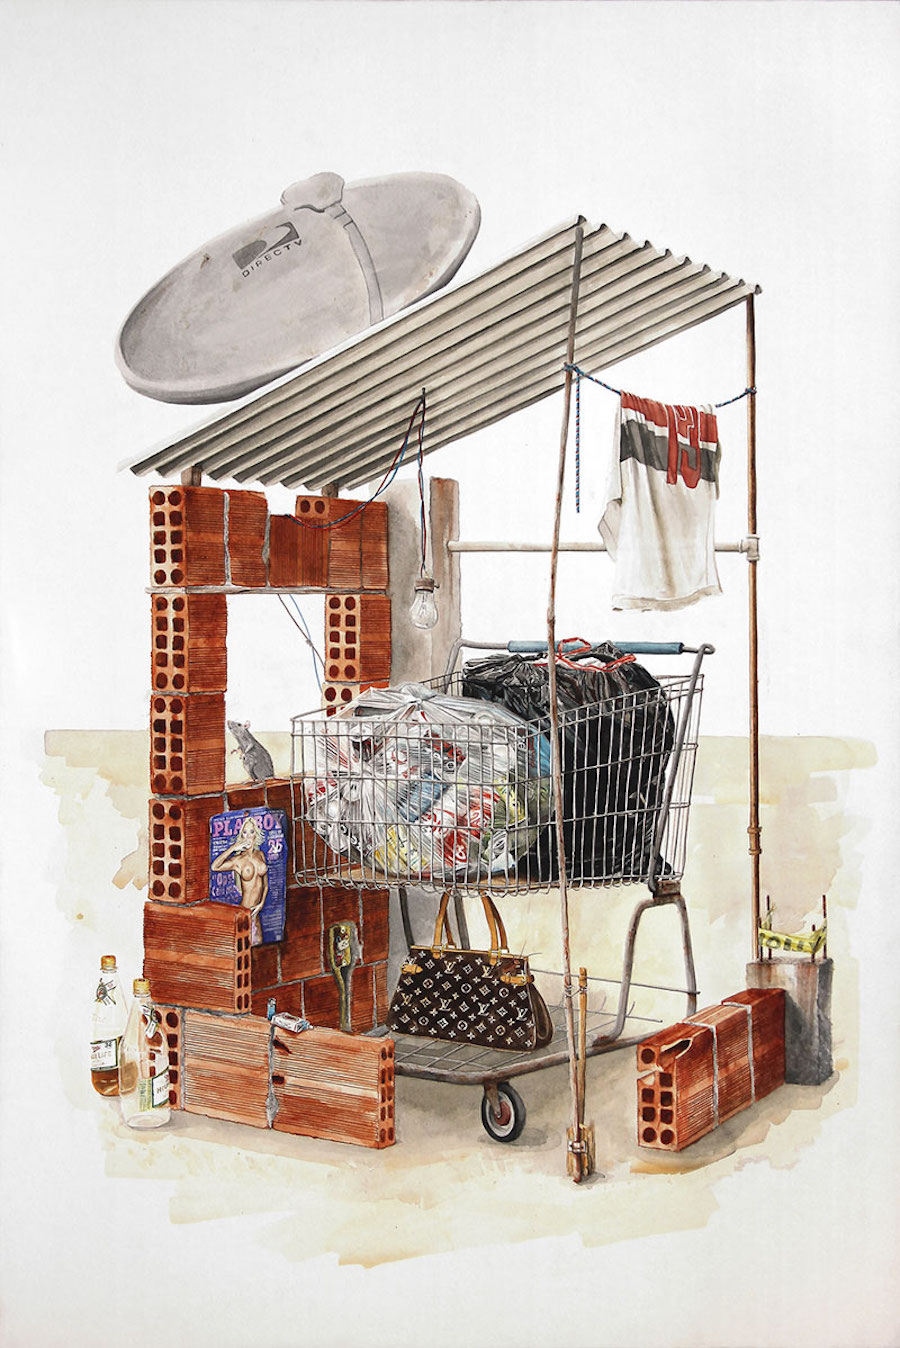 Splendid Organized Trash by Alvaro Naddeo